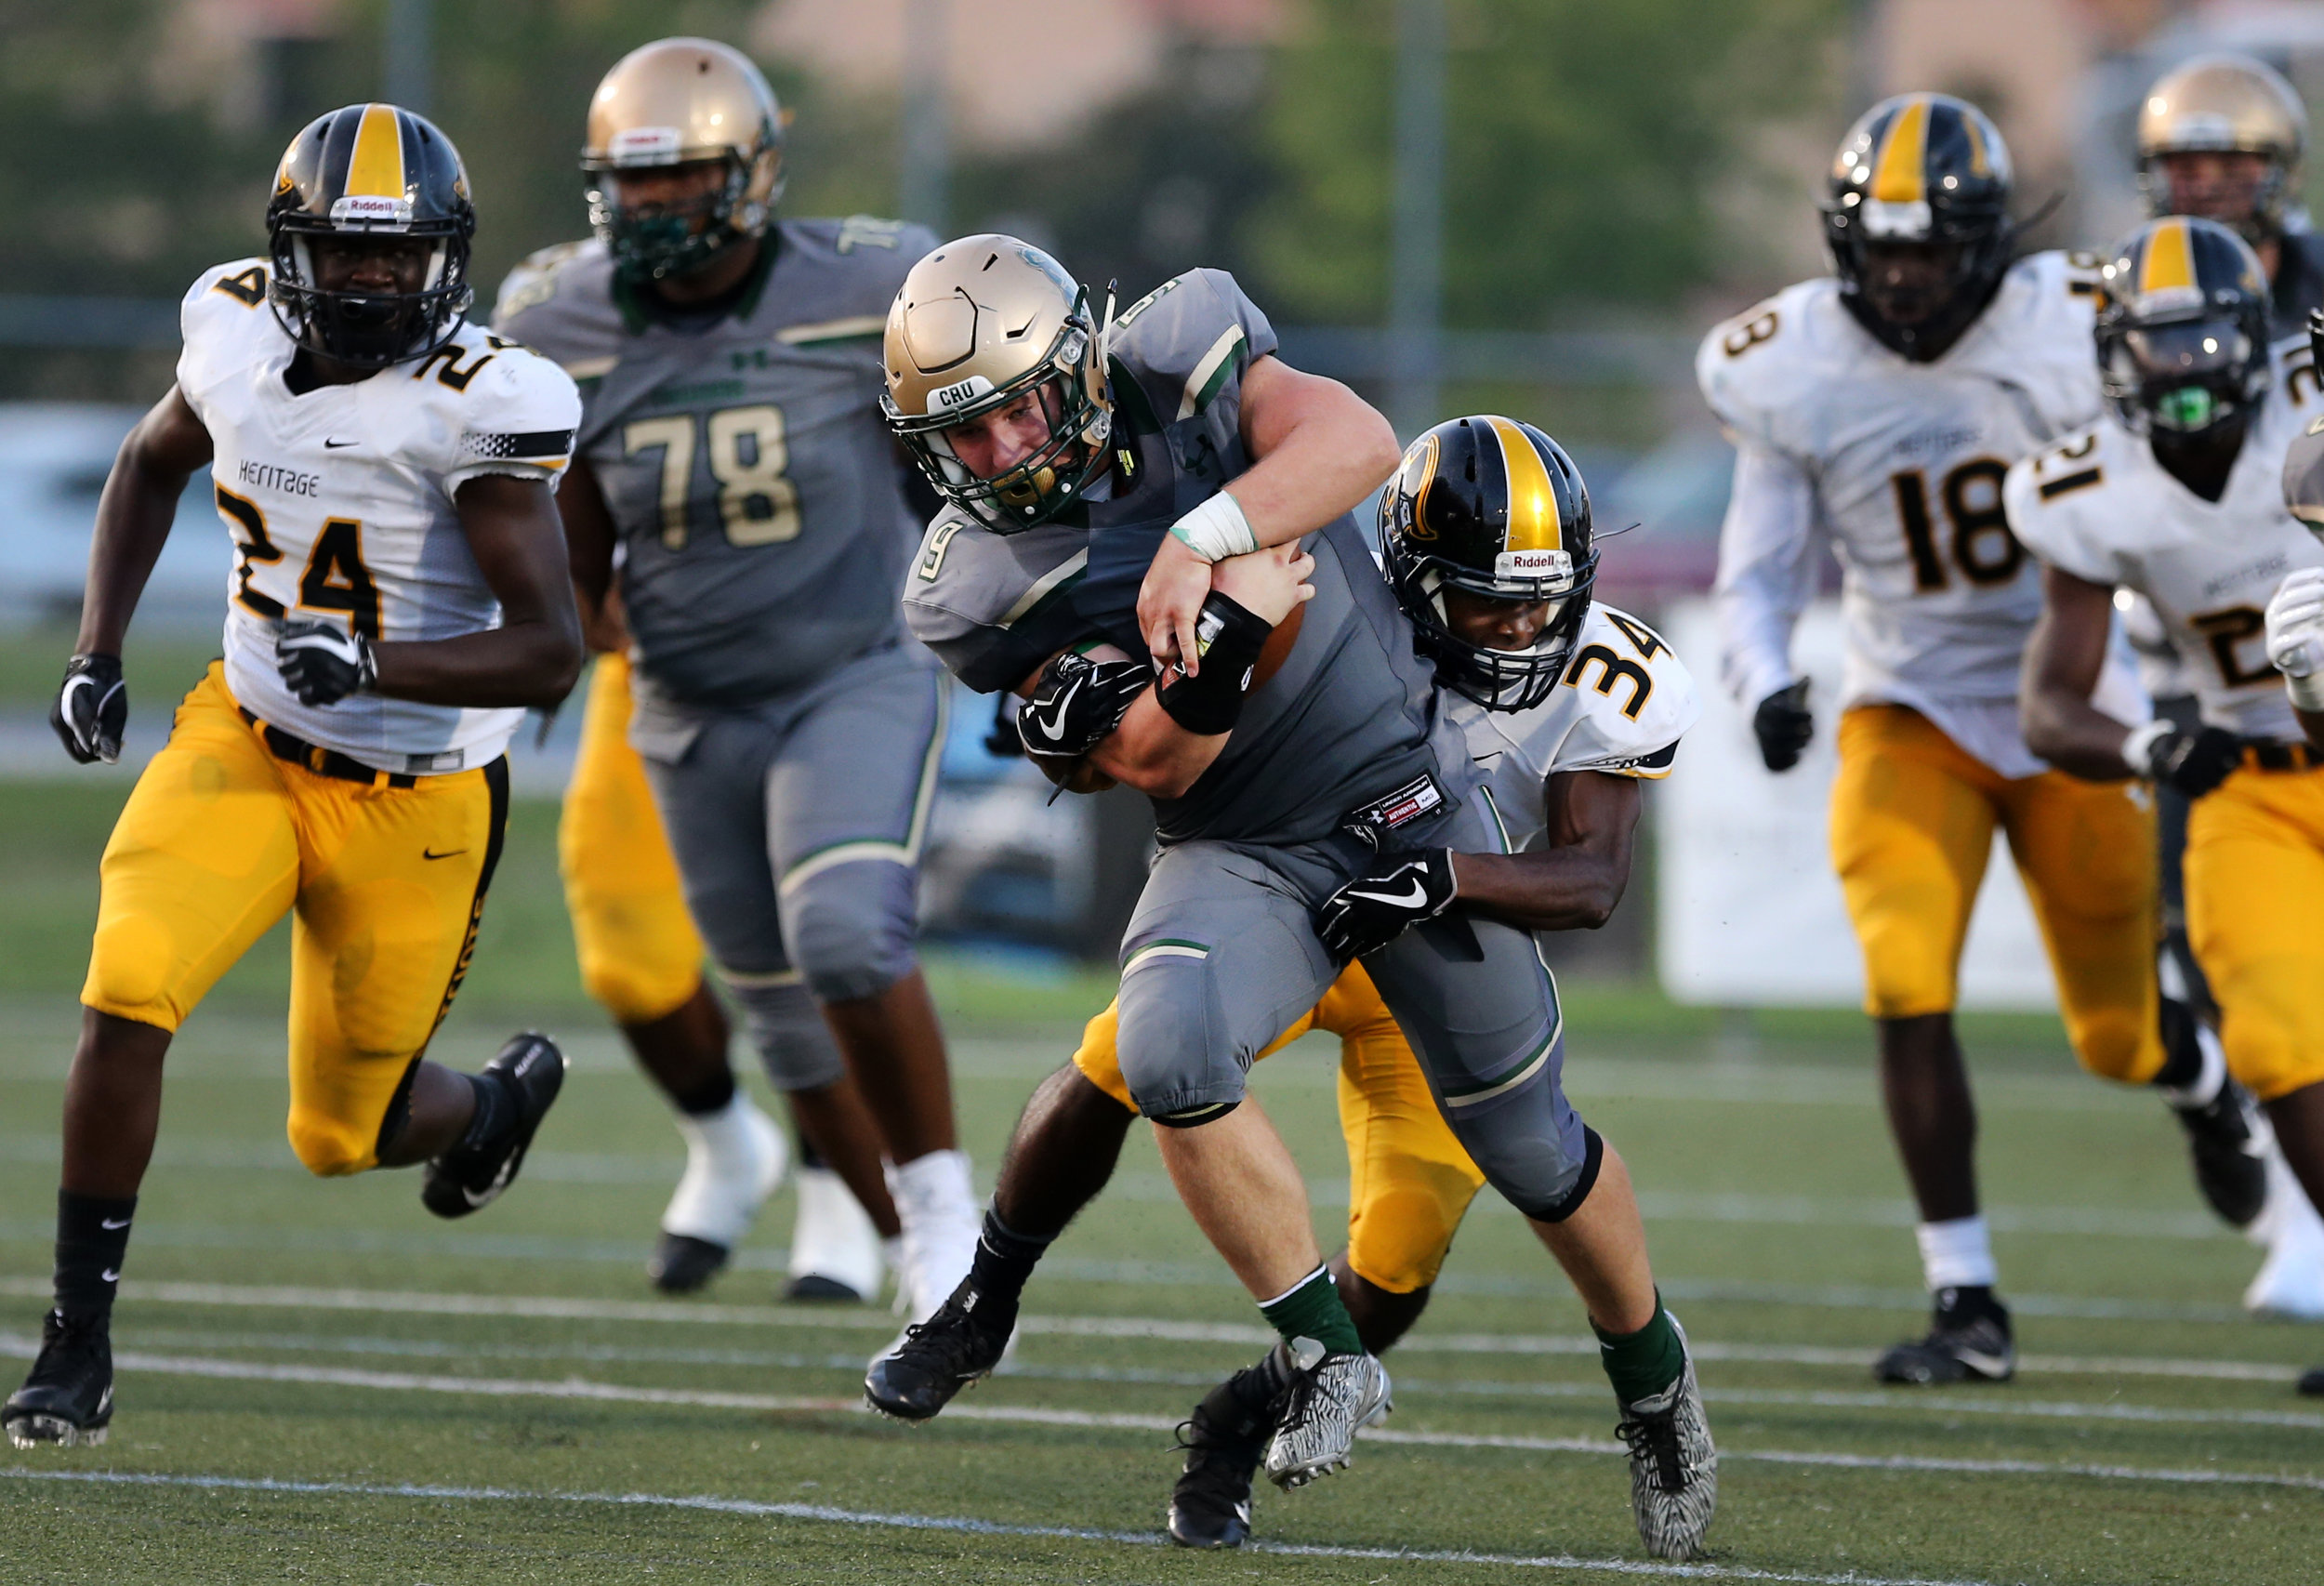 Bishop Sullivan's Jake Low runs for a first down before being tackled by American Heritage's Clarence Burley during the Crusaders' 14-7 loss, Saturday, August 26, 2017 at the Sportsplex in Virginia Beach.